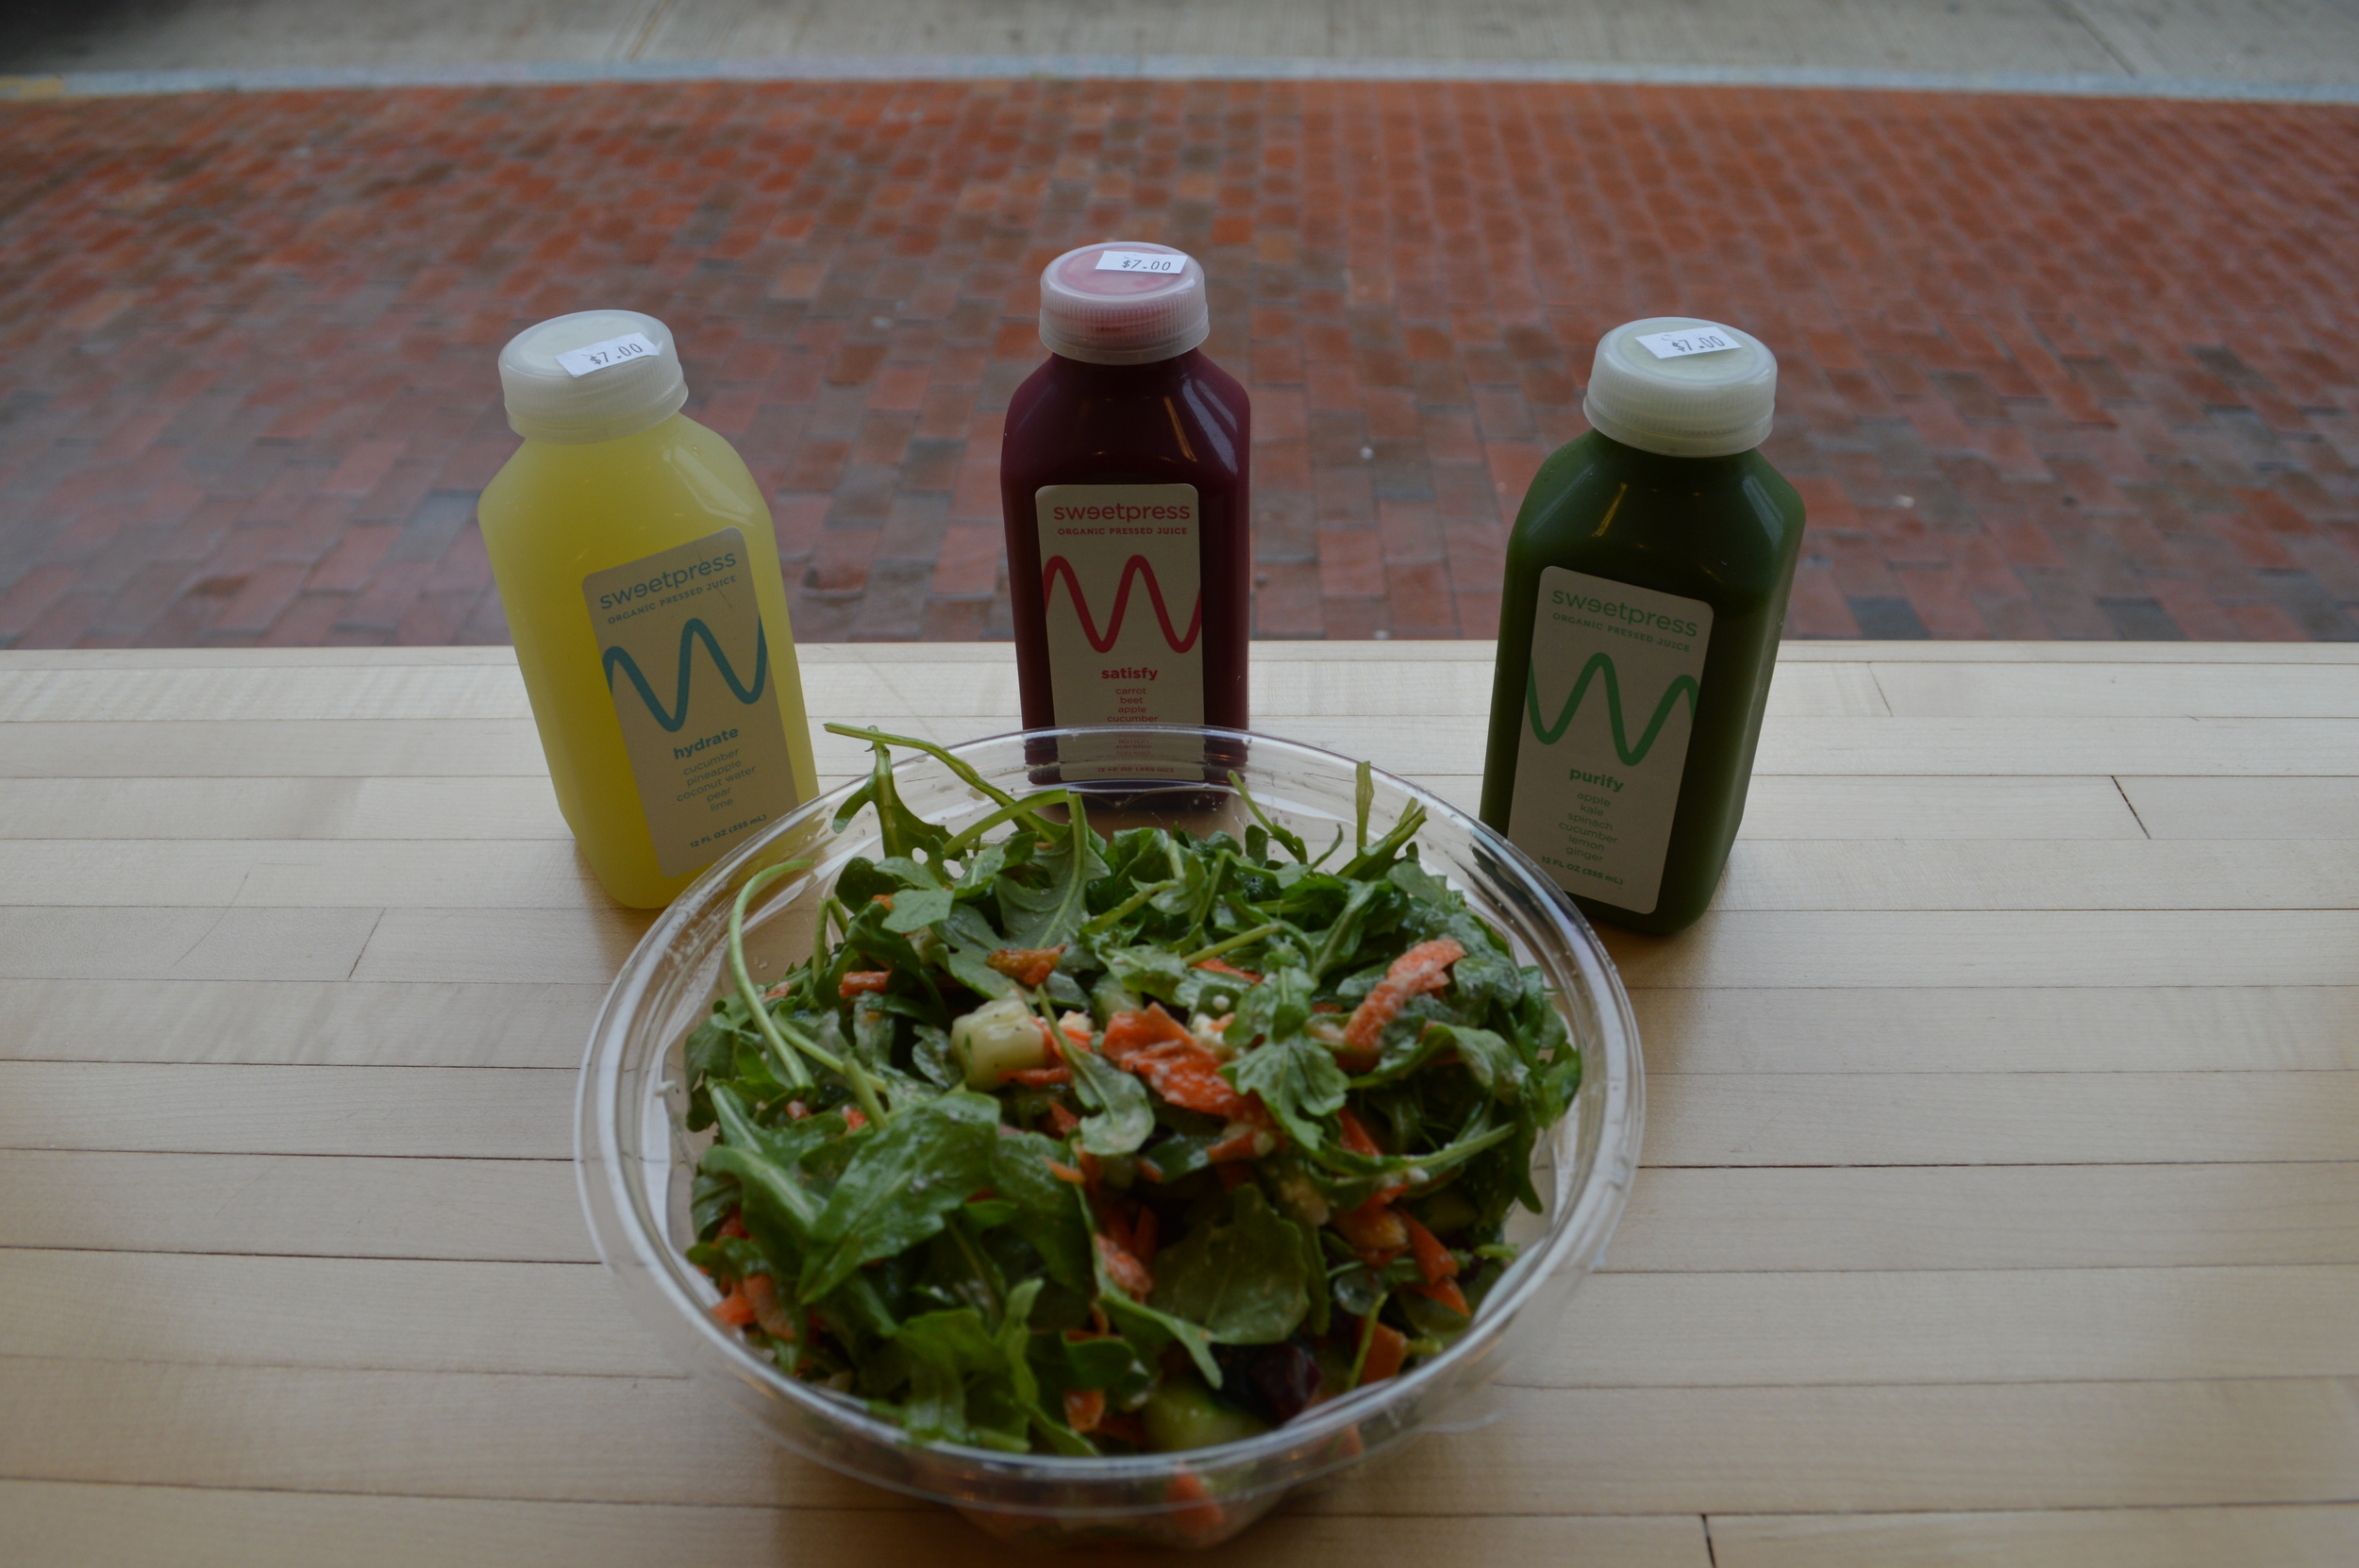 sweetgreen salad and sweet press juice